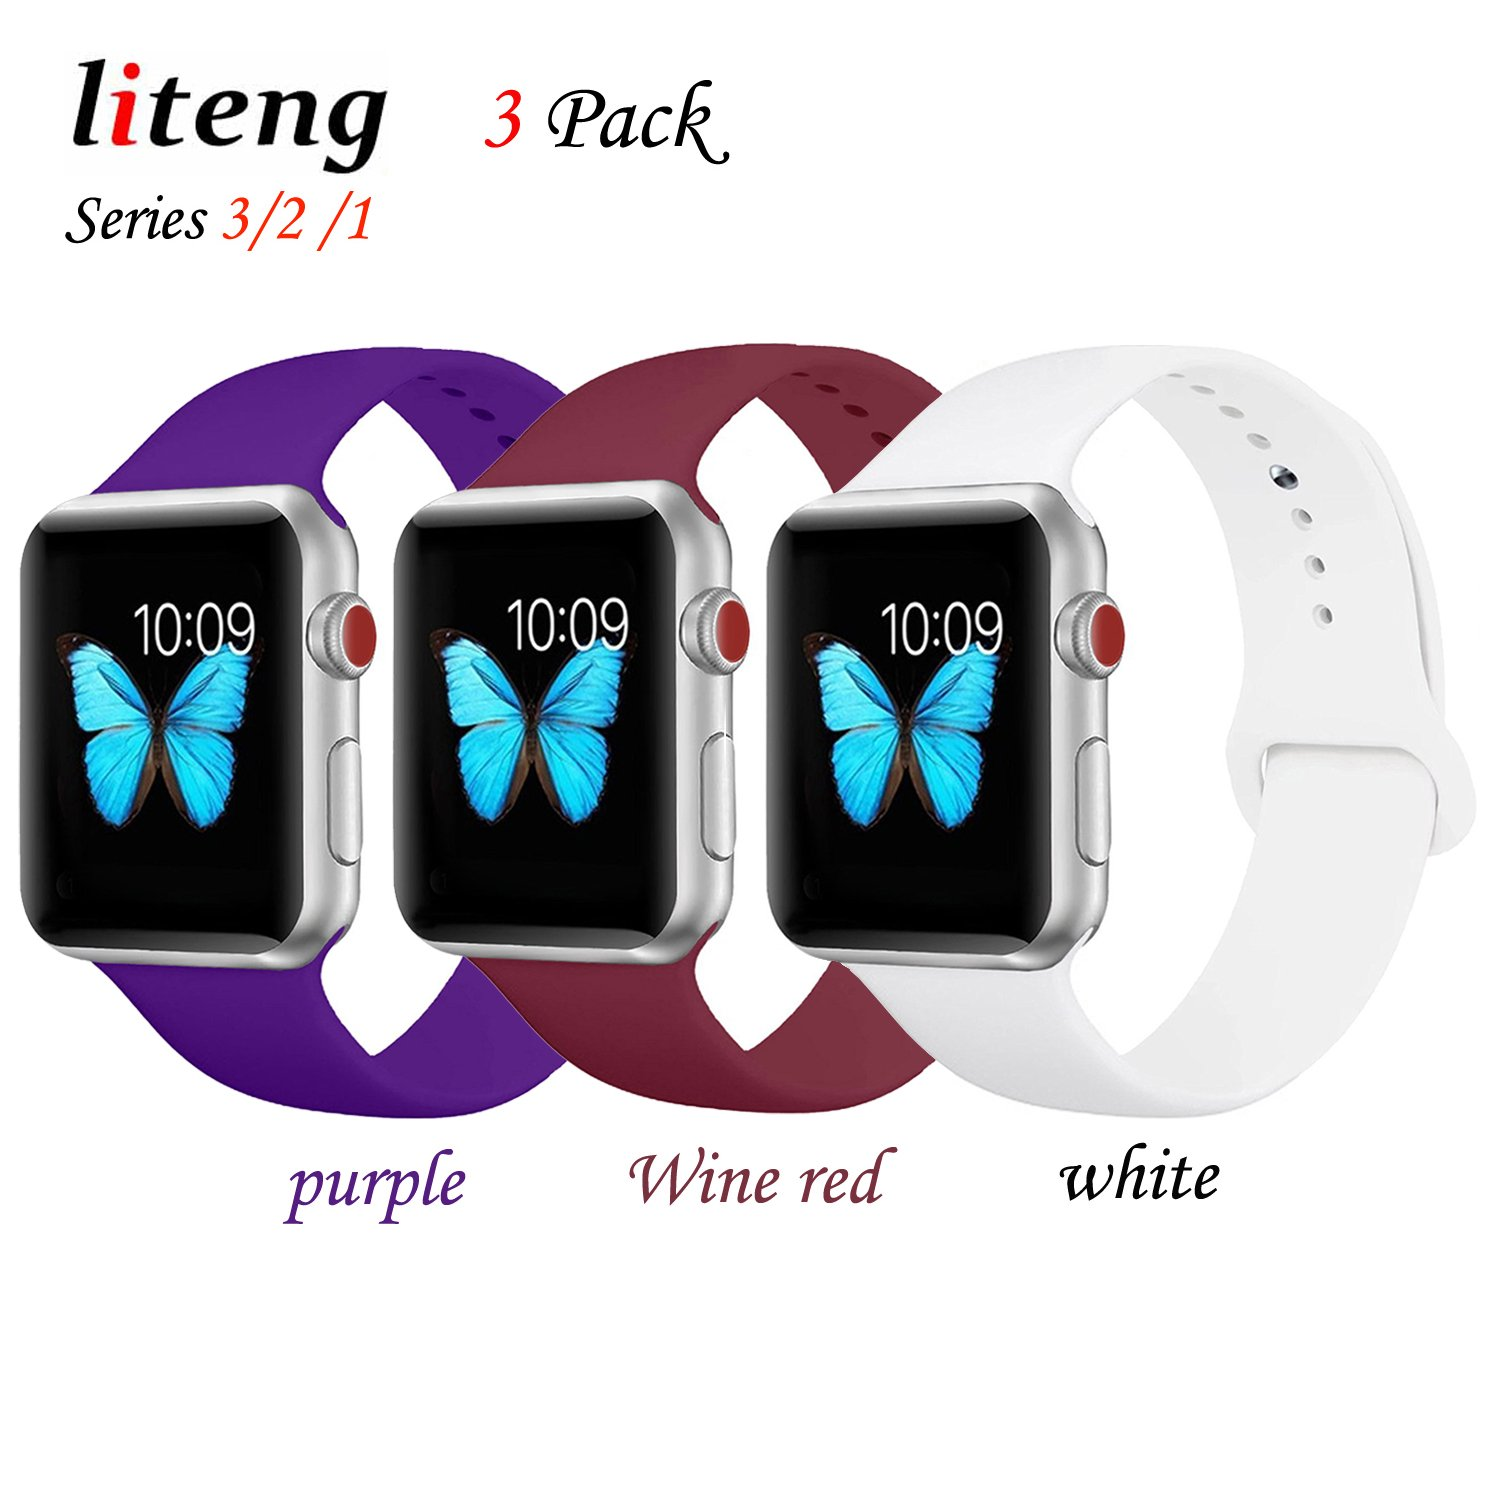 for Apple Watch Band, LITENG Durable Soft Silicone Replacement iWatch Band Sport Style Wrist Strap for Apple Watch Band 42mm Series 3 Series 2 Series 1 Sport (3 Pack(Purple+Wine red+White), 42mm S/M)